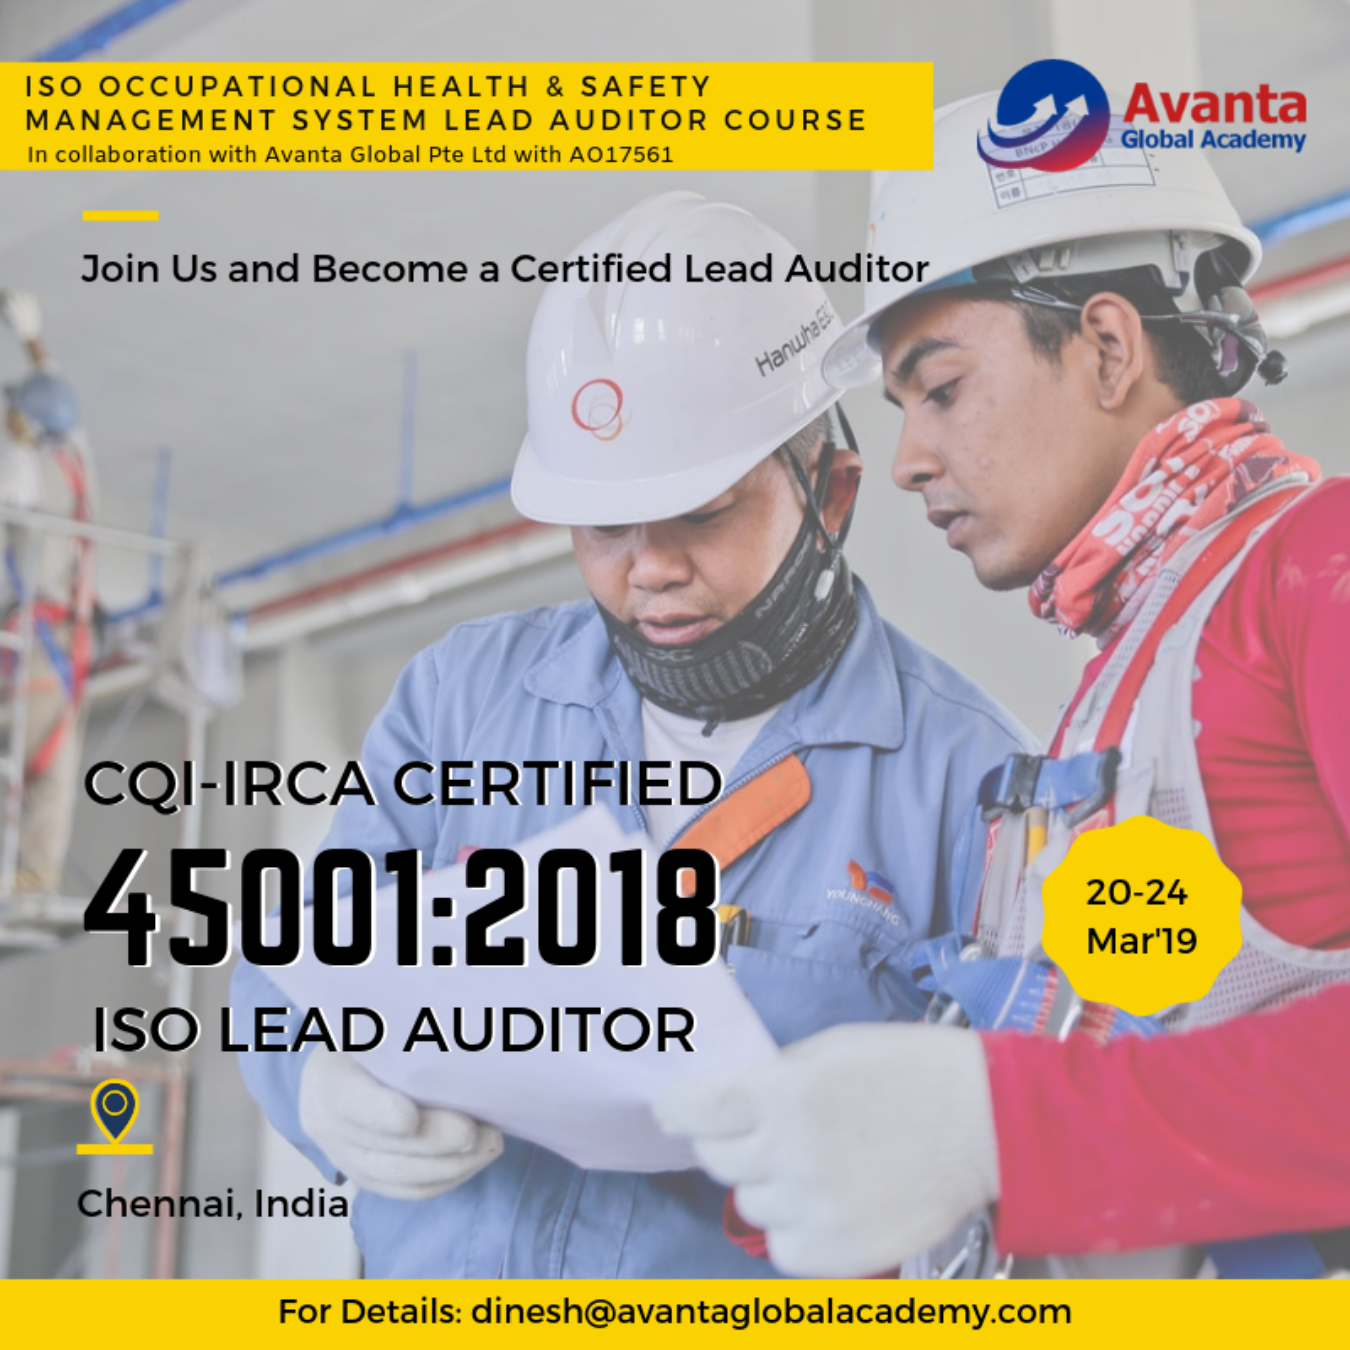 ISO 45001:2018 Occupational Health & Safety Management System Auditor / Lead Auditor Course